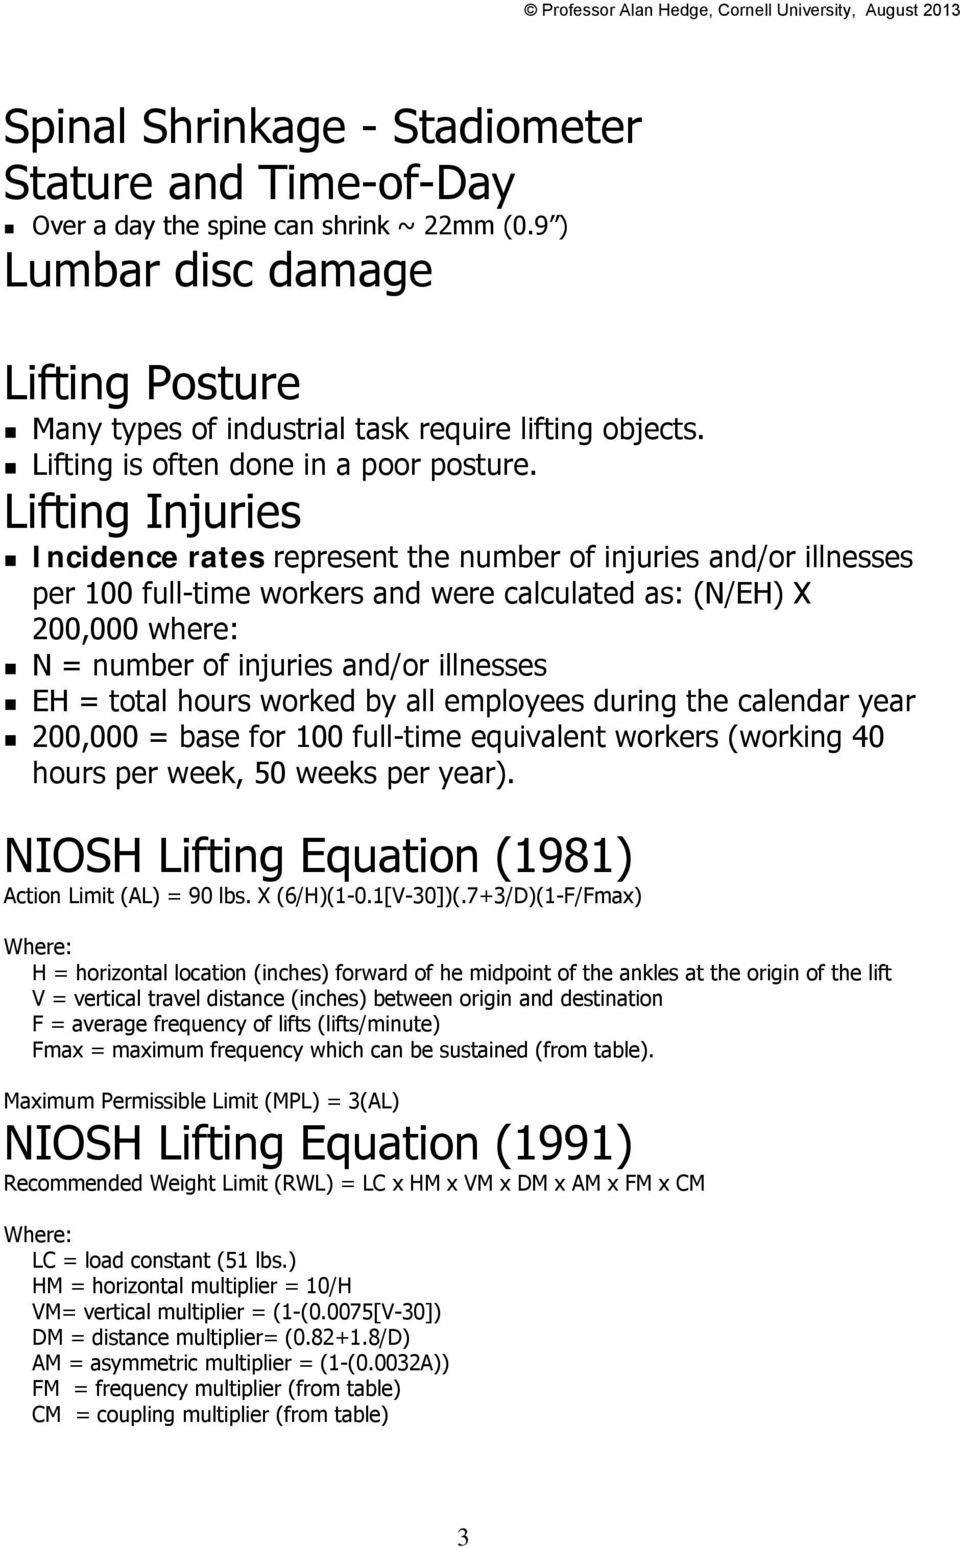 Lifting Injuries Incidence rates represent the number of injuries and/or illnesses per 100 full-time workers and were calculated as: (N/EH) X 200,000 where: N = number of injuries and/or illnesses EH